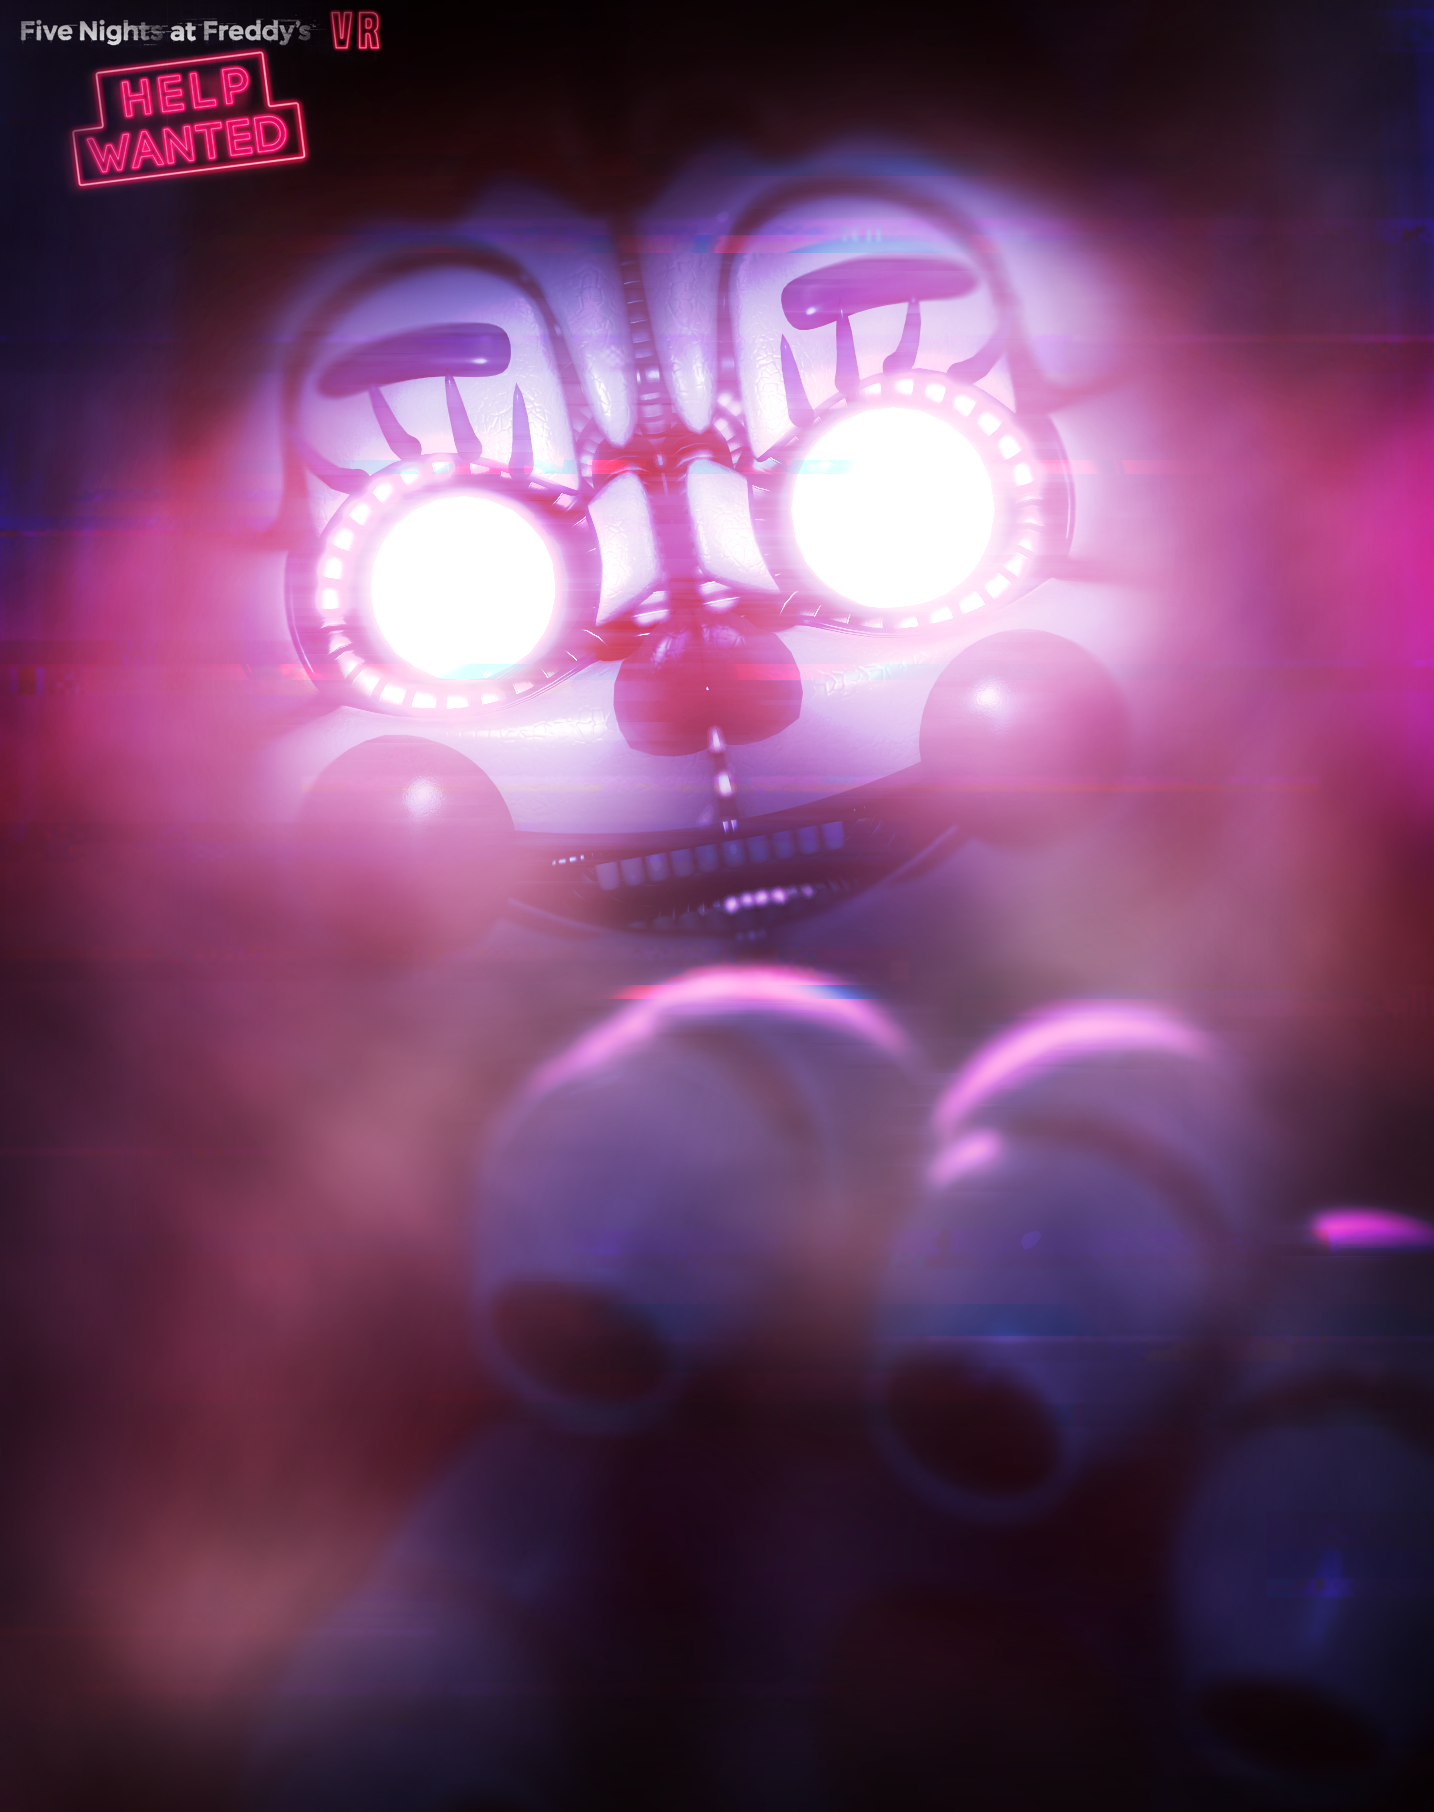 Five Nights At Freddy S Circus Baby Wallpaper Fnaf Sfm Remake Circus Baby Vr By Aftonproduction On Deviantart In 2020 Fnaf Wallpapers Fnaf Fnaf Drawings